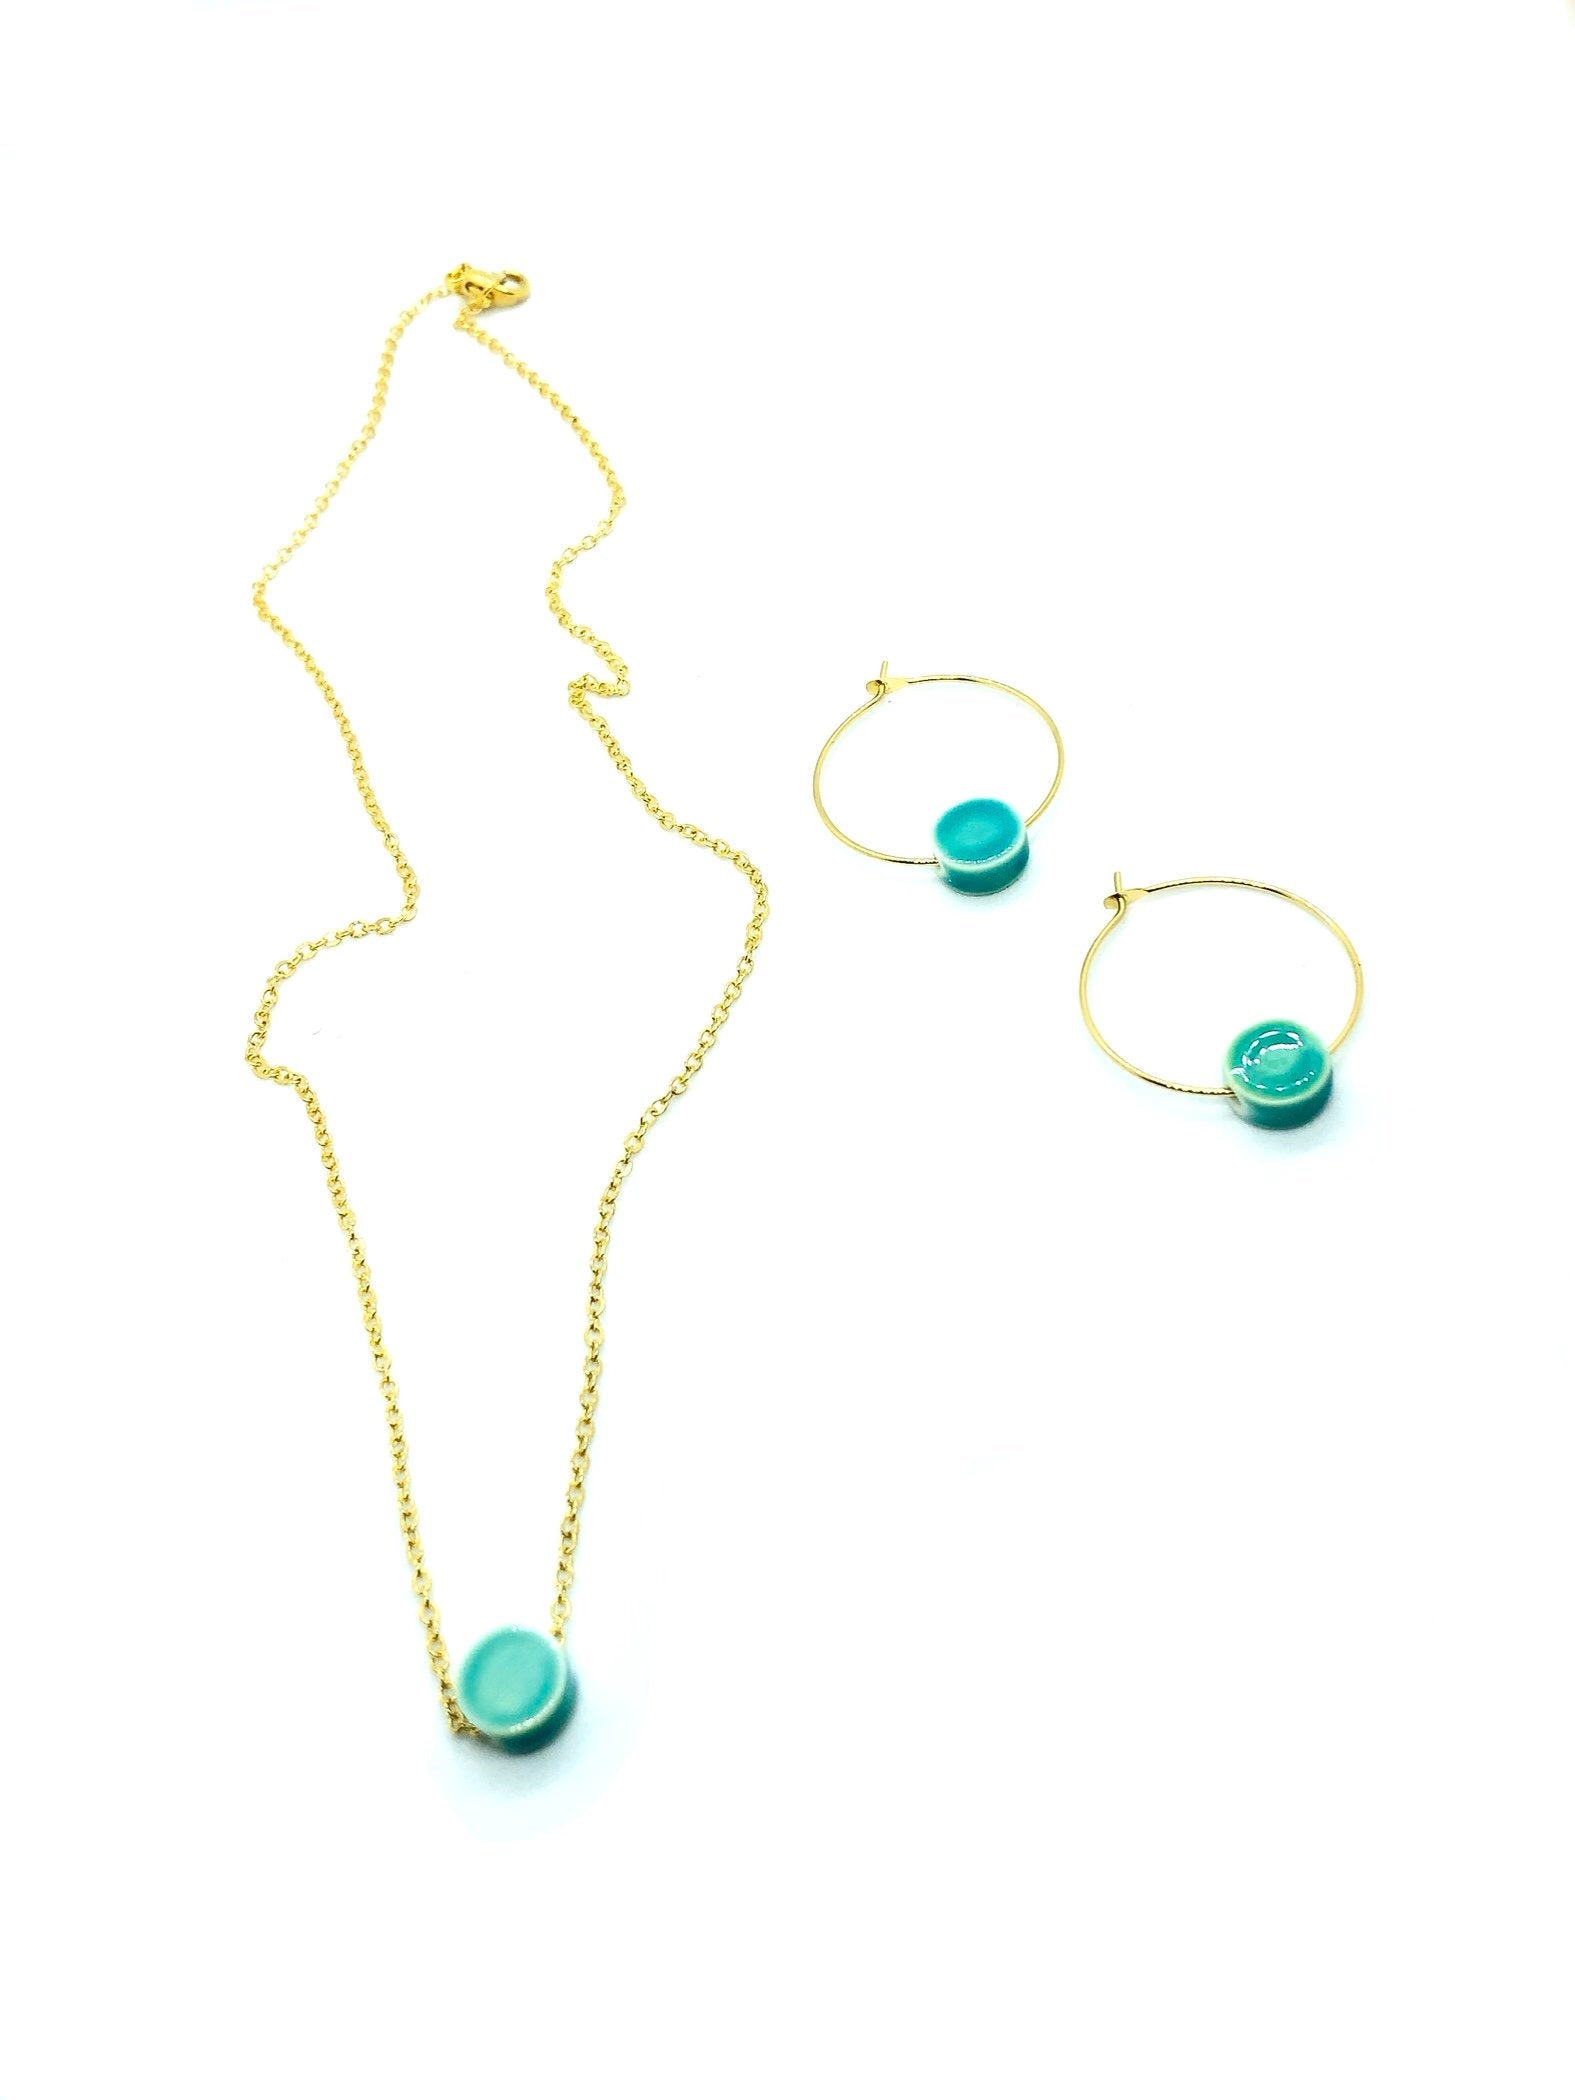 dainty and gold turquoise necklace gifts for mom & turquoise hoop earrings gold, best friend birthday gifts for her, boho chic jewelry, mom